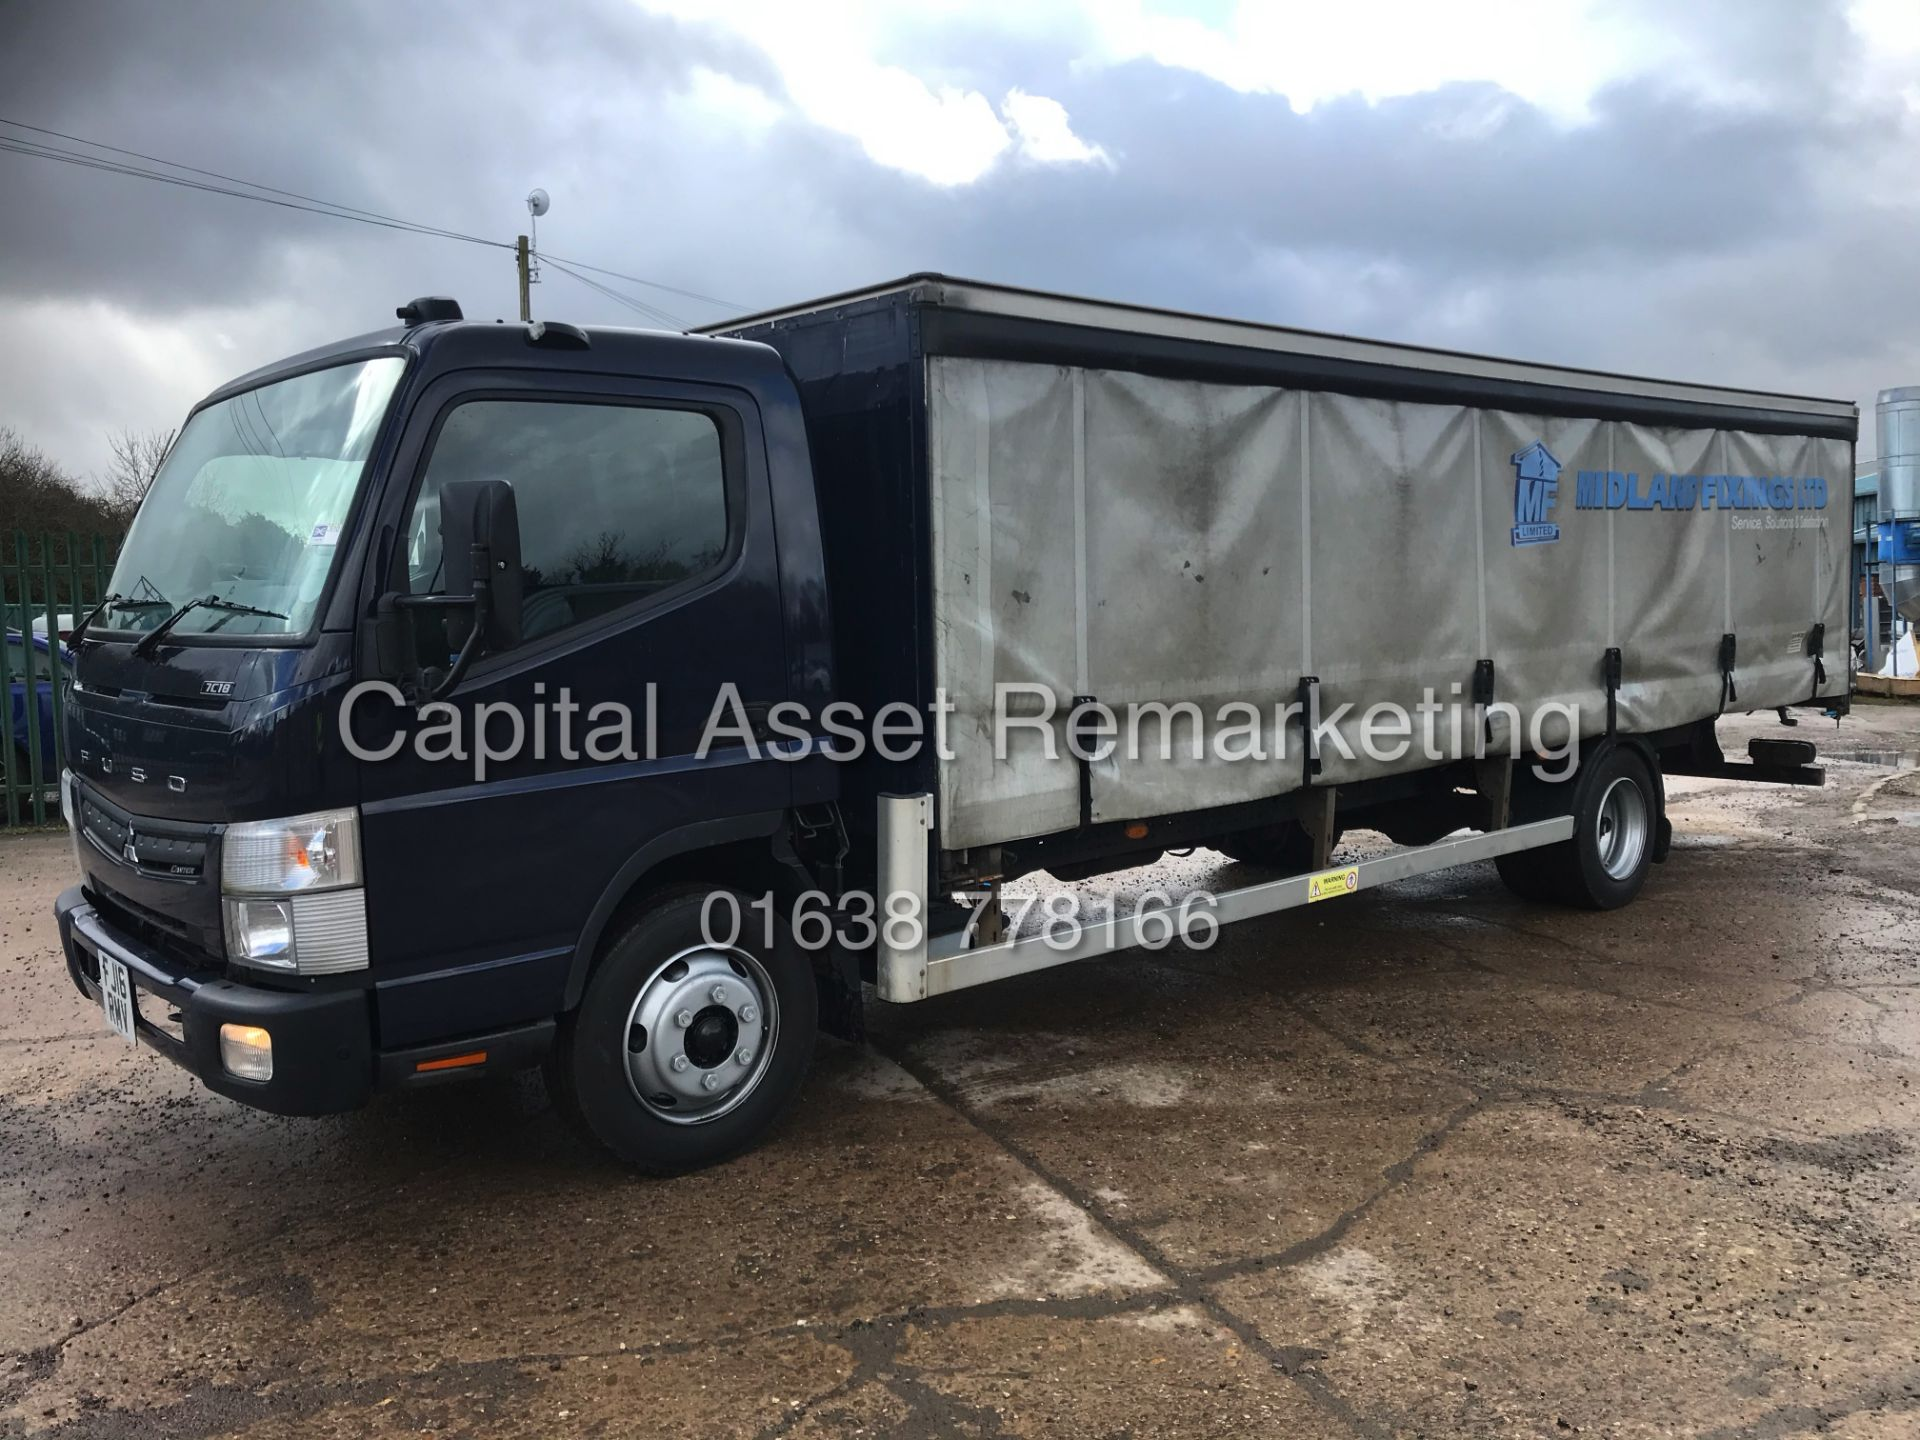 (ON SALE) MITSUBISHI FUSO CANTER 7C18 (16 REG) 1 OWNER *EURO 6* AD-BLUE - 4 WAY CAMERA SYSTEM - Image 2 of 20